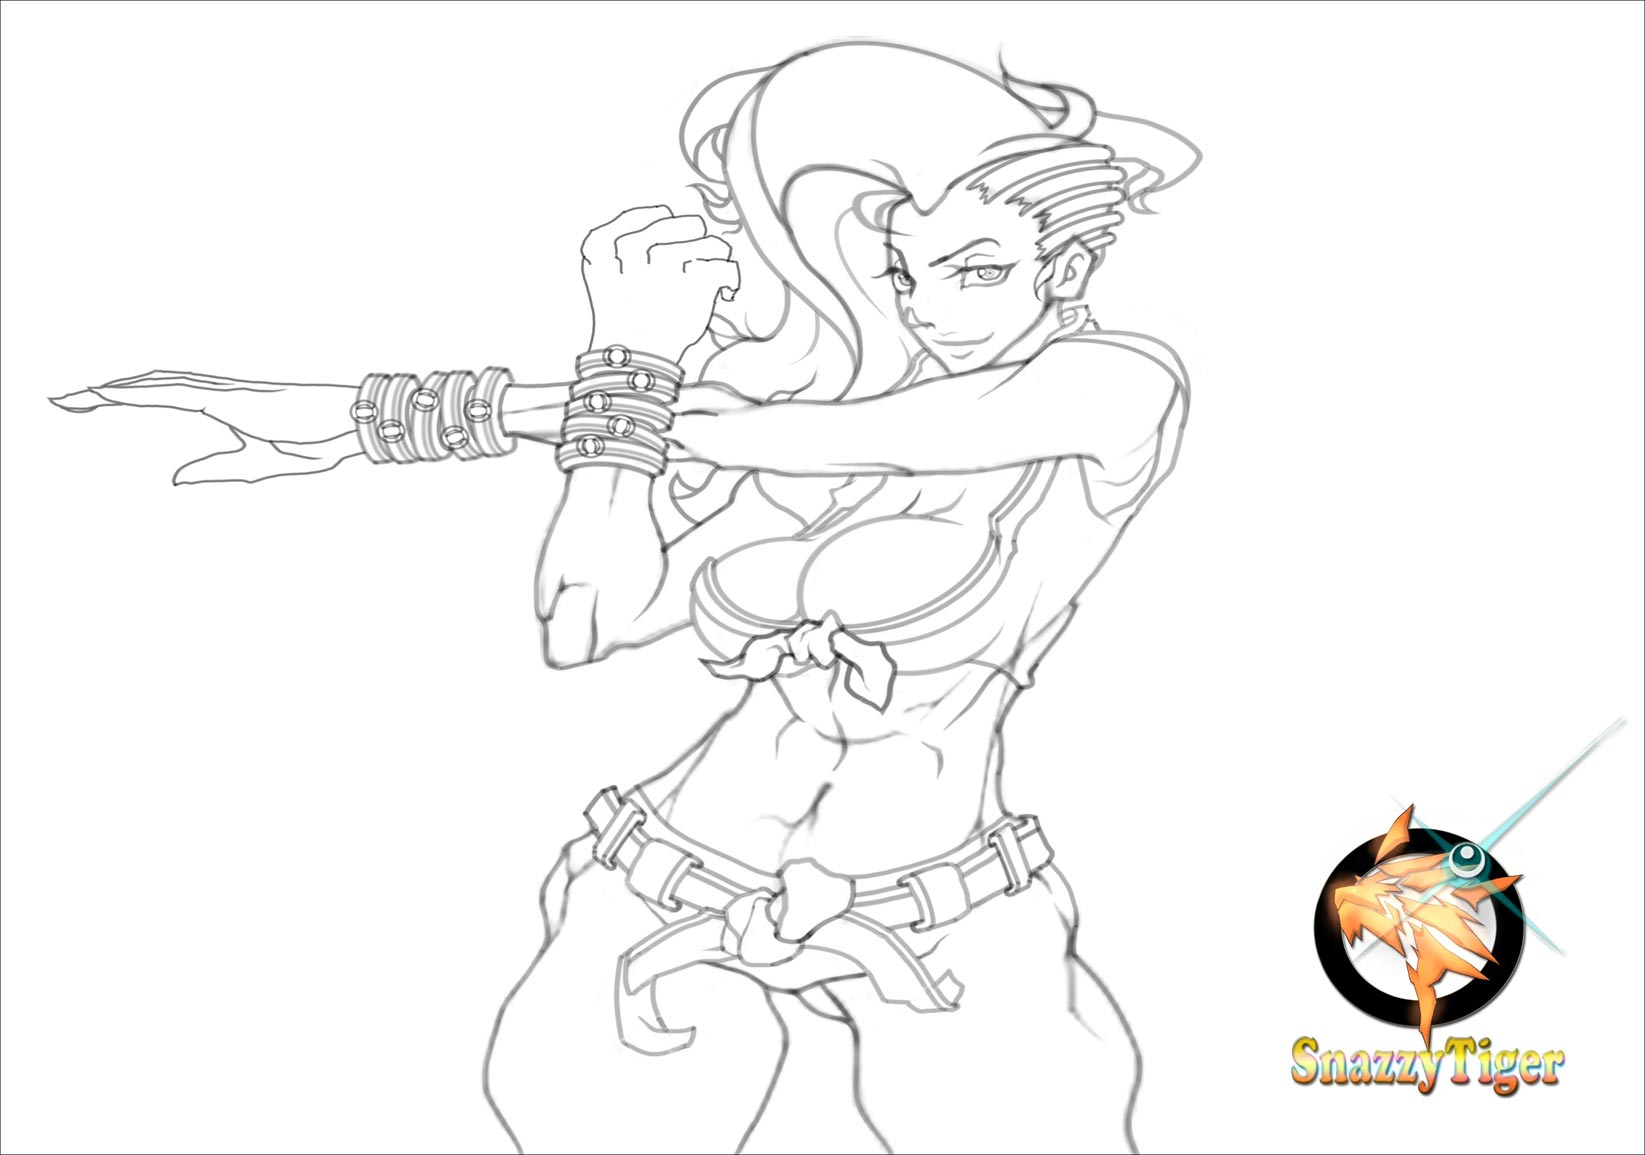 Lamar Price's fighting game sketches 2 out of 7 image gallery